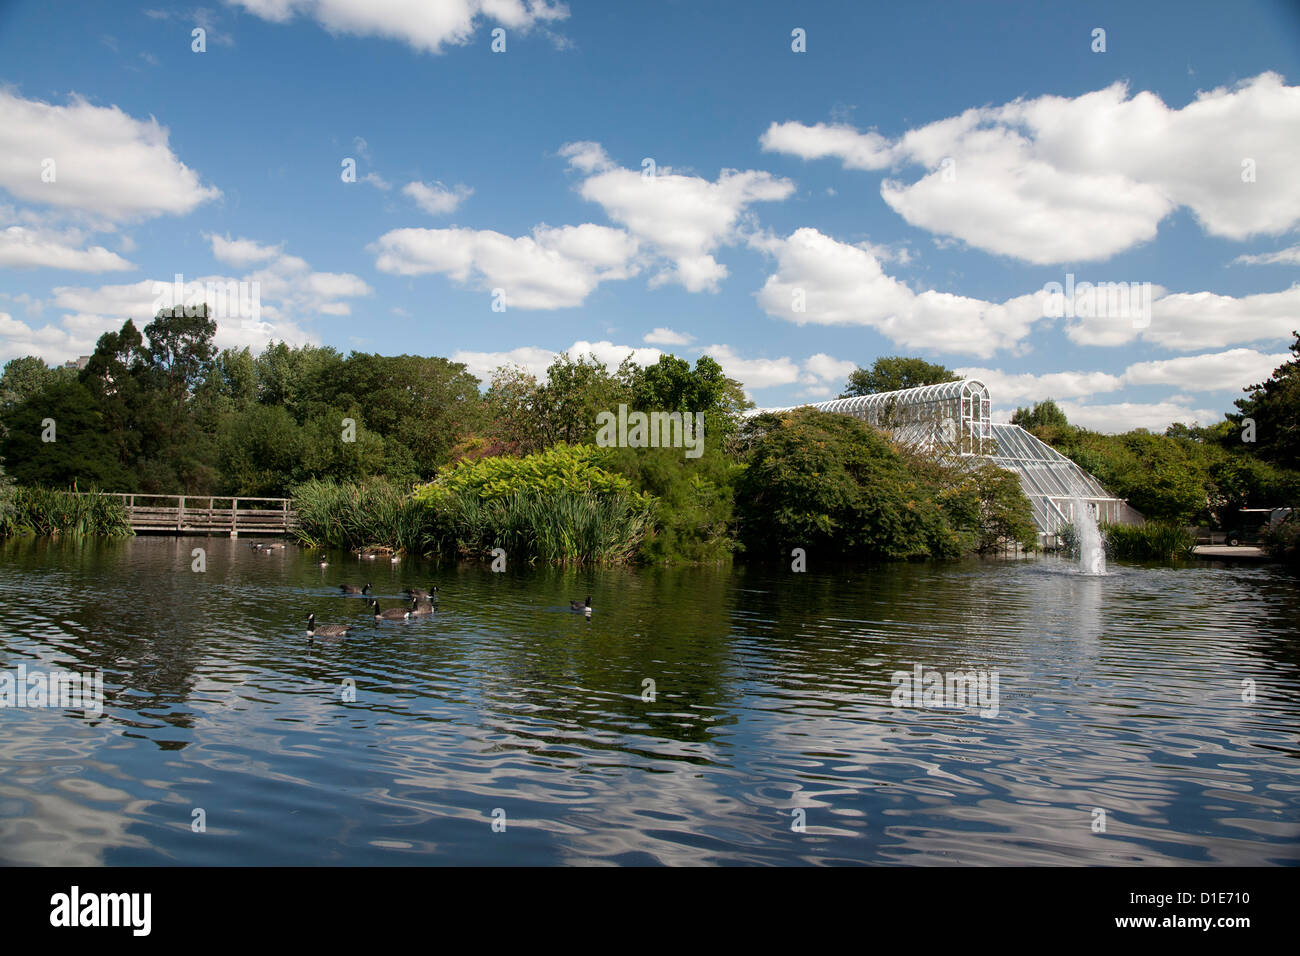 Ducks by fountain and Conservatory on River Thames, Royal Botanic Gardens, Kew, near Richmond, Surrey, England, - Stock Image